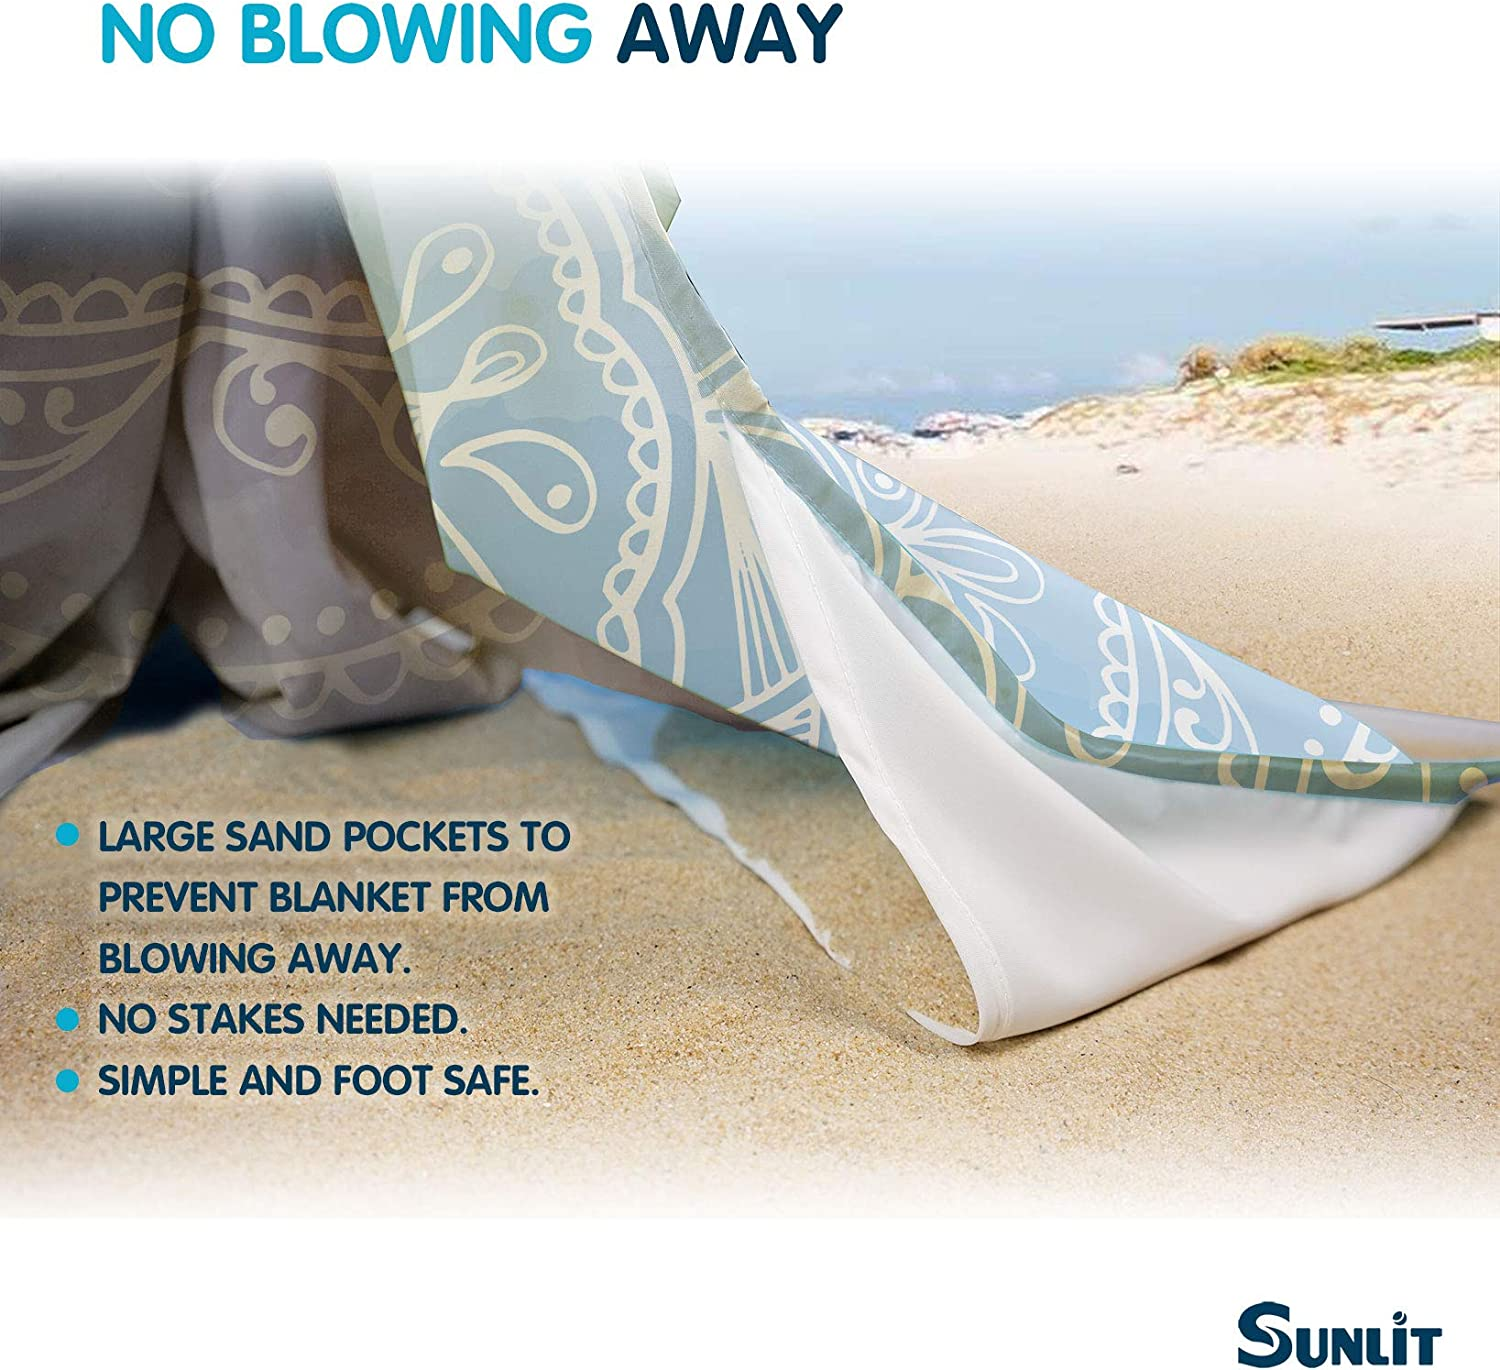 Travel Mandala Sunlit Silky Soft Sand Proof Beach Blanket Sand Proof Mat with Corner Pockets and Mesh Bag for Beach Party Camping and Outdoor Music Festival